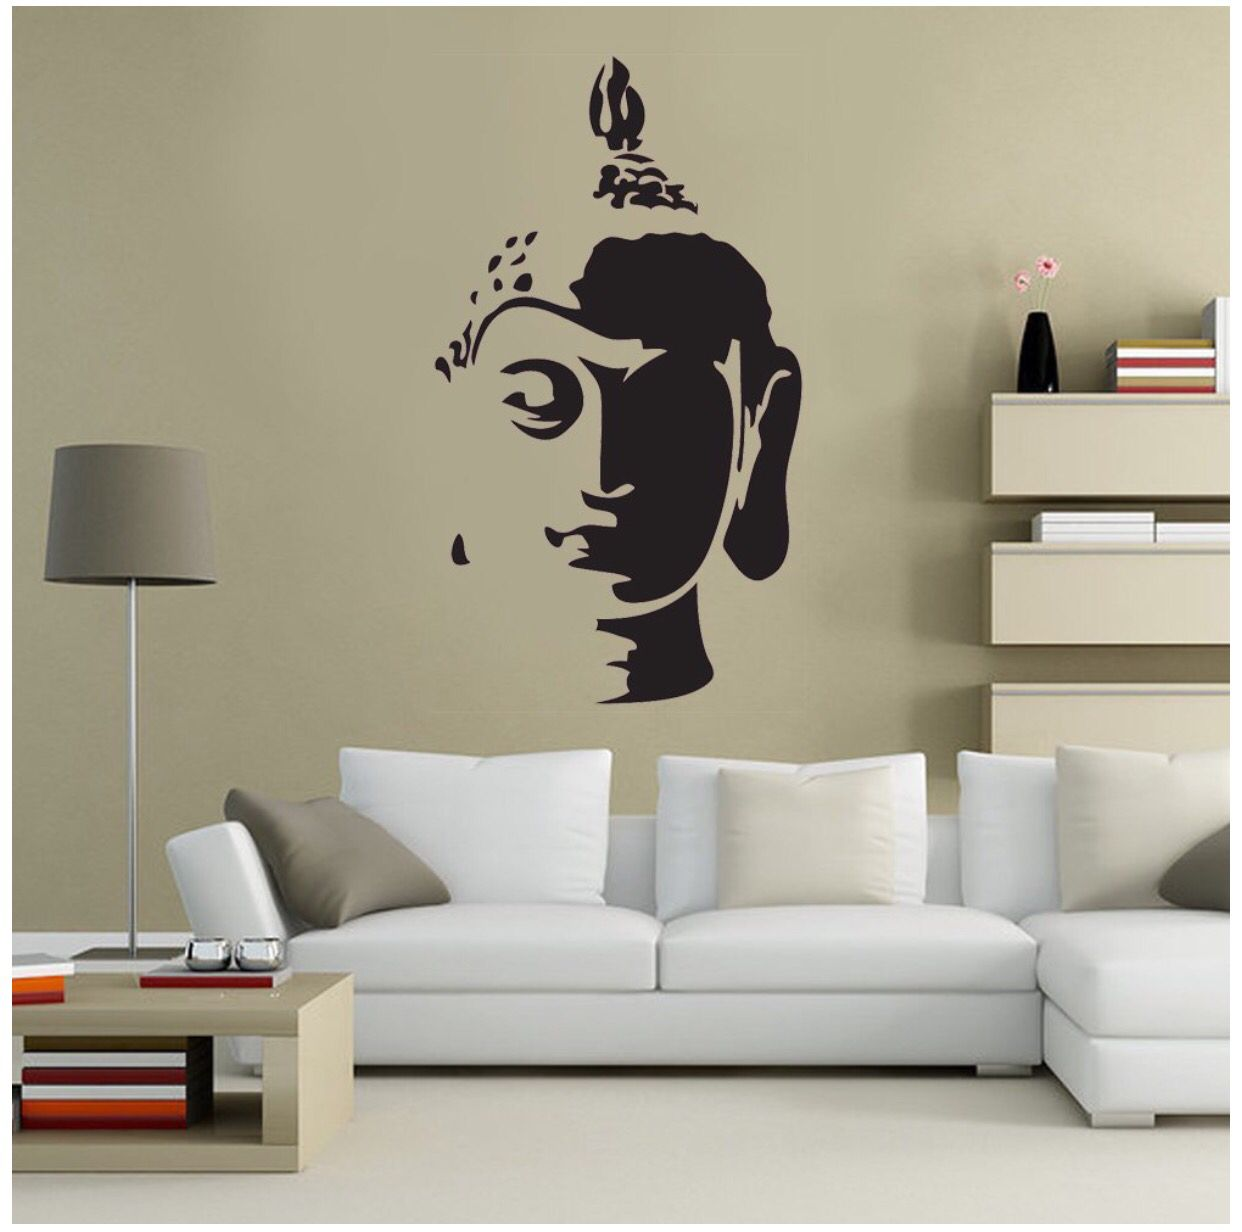 Vinyl Wall Decal Vinyl Wall Sticker Source Amazon Painting Wall Decor